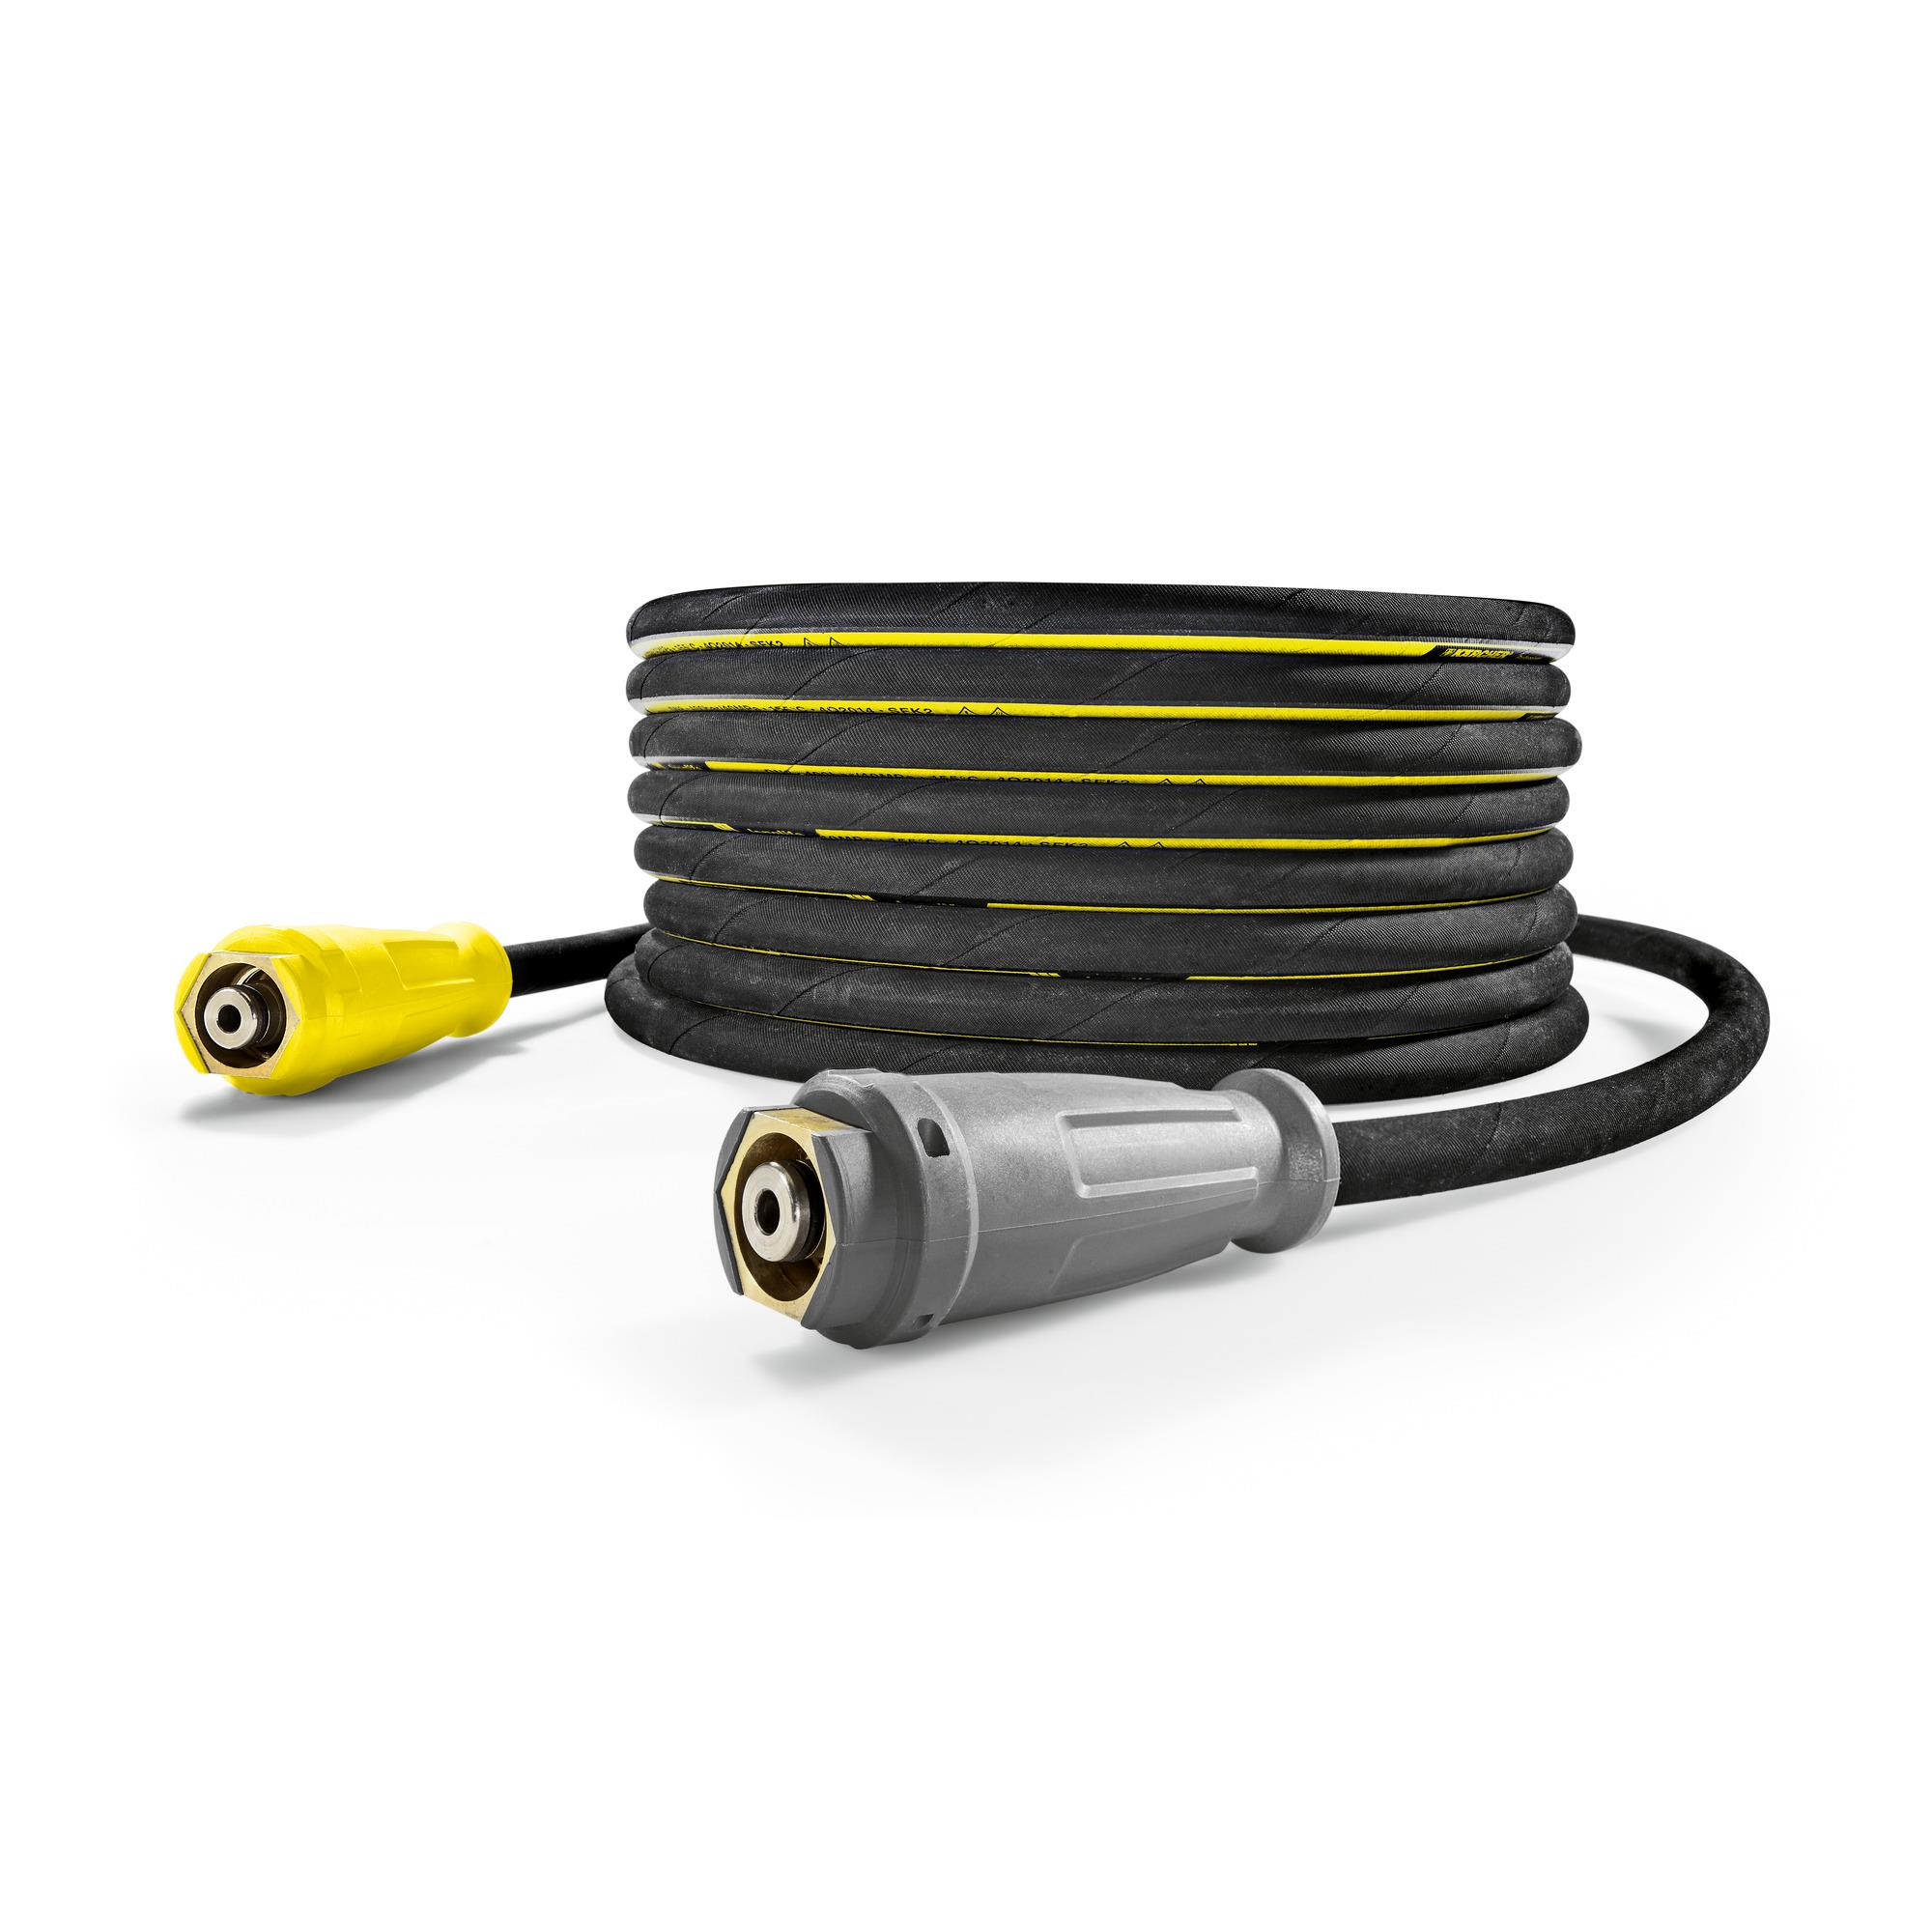 Σωλήνας υψηλής πίεσης με 2 EASY!Lock DN 6, 250 bar, 10 μ., ANTI!Twist 6.110-035.0 KARCHER - KARCHER PREMIER CENTER